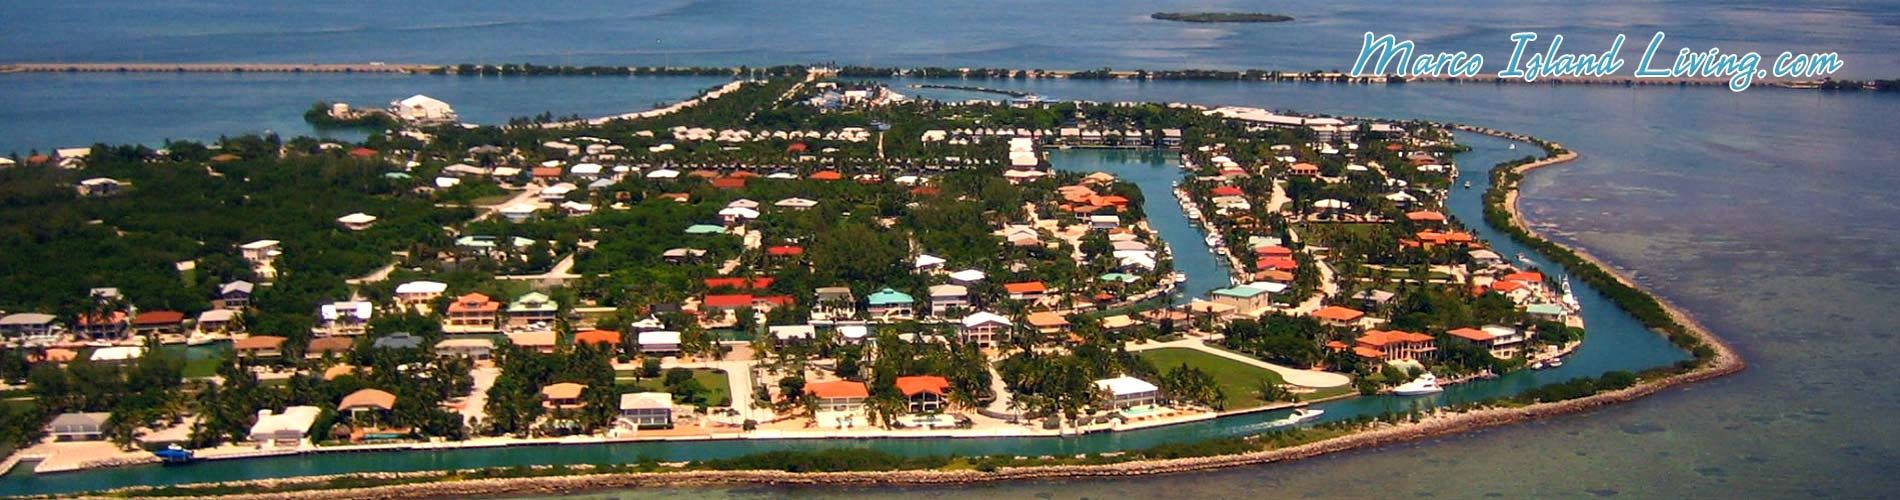 Marco Island SWFL Vacation Guide to Living Dining Real Estate Fun Attractions Art Sports Entertainment on Marco Island